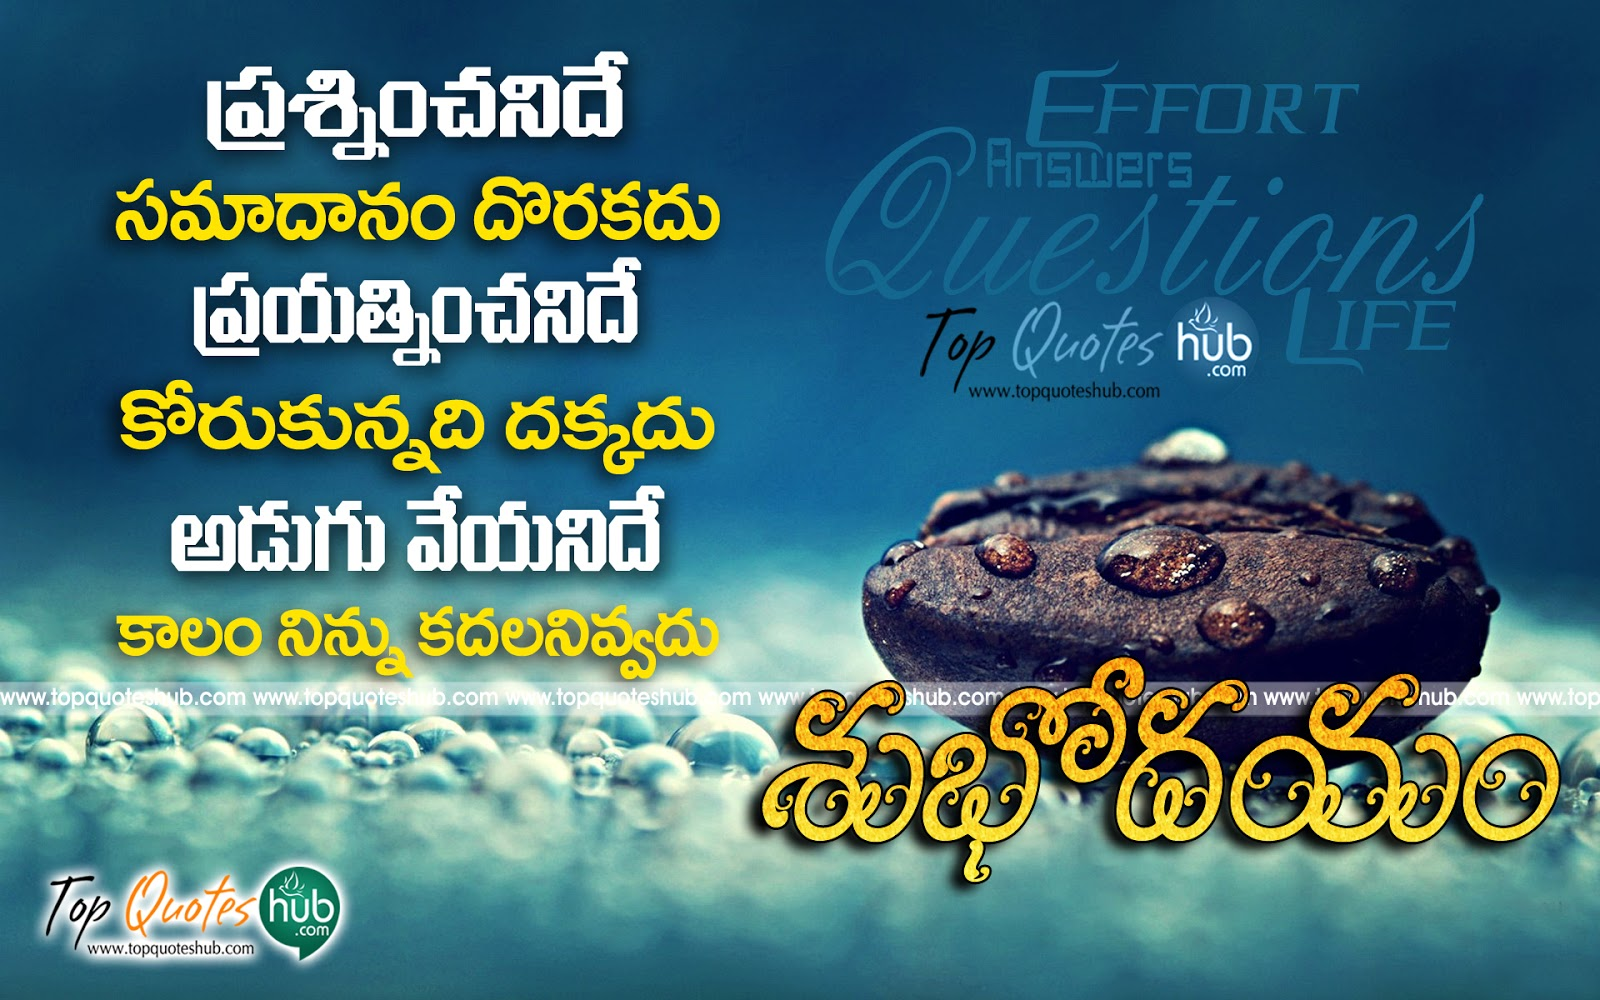 Good morning famous telugu quotes and sayings topquoteshub best good morning telugu greetings quotes wishes about m4hsunfo